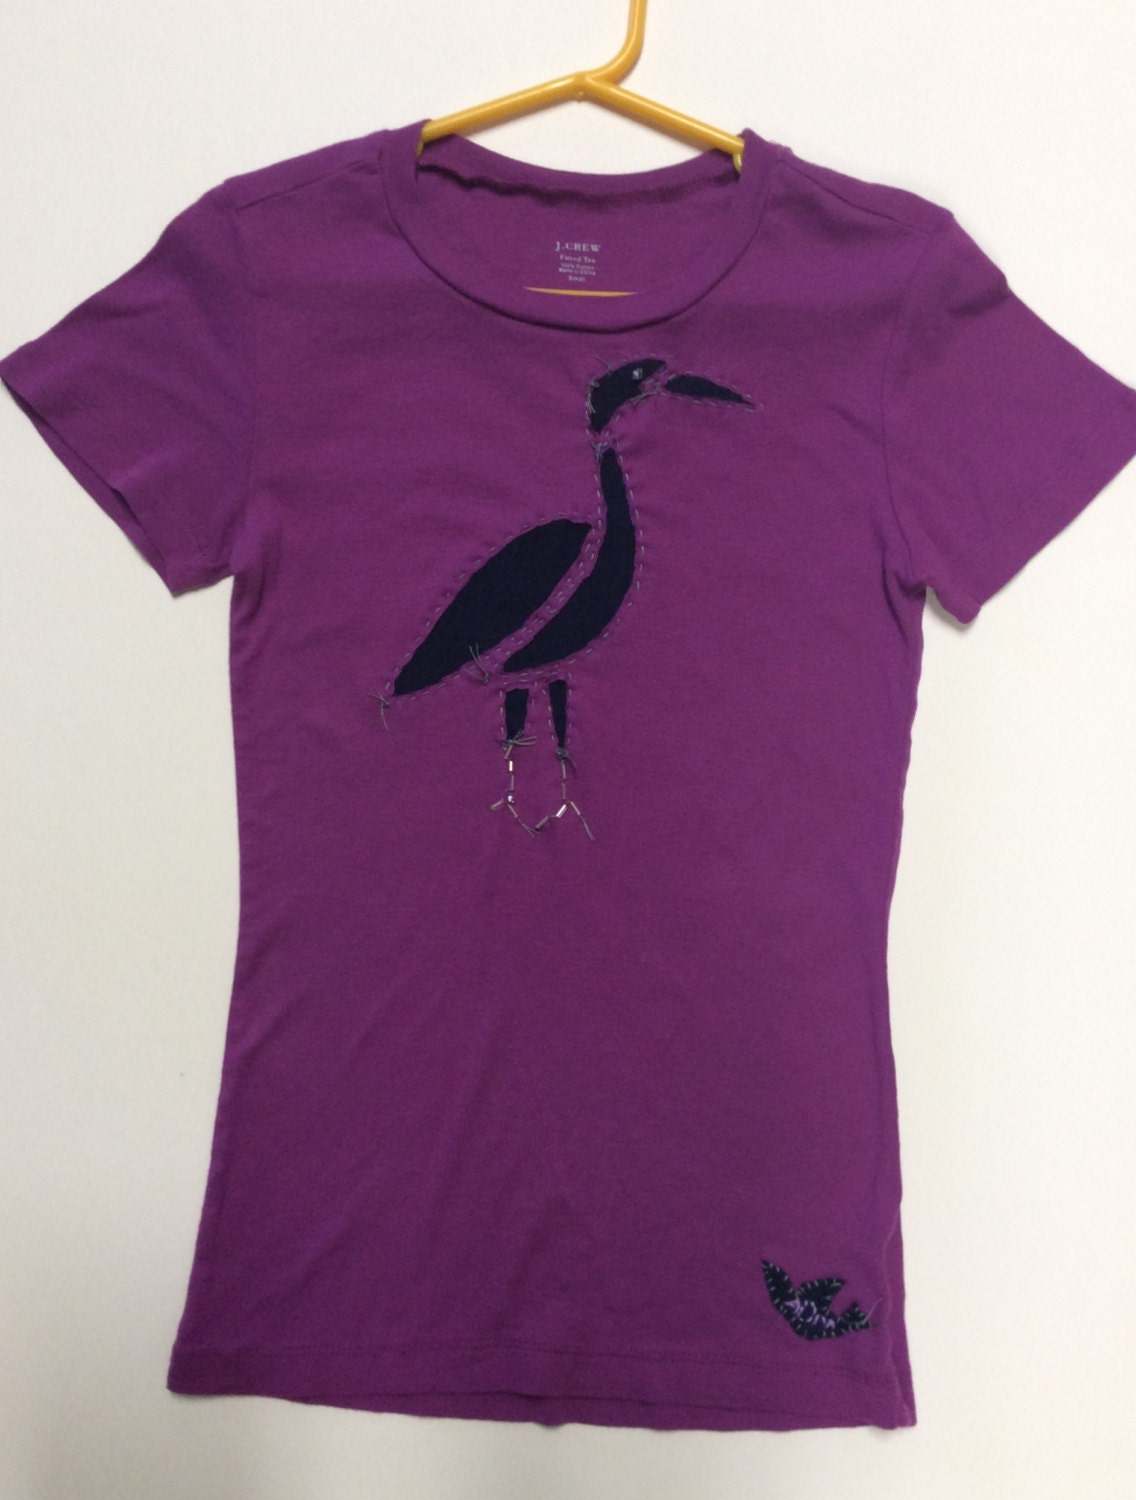 Upcycled T Shirt With Reverse Applique Heron Design